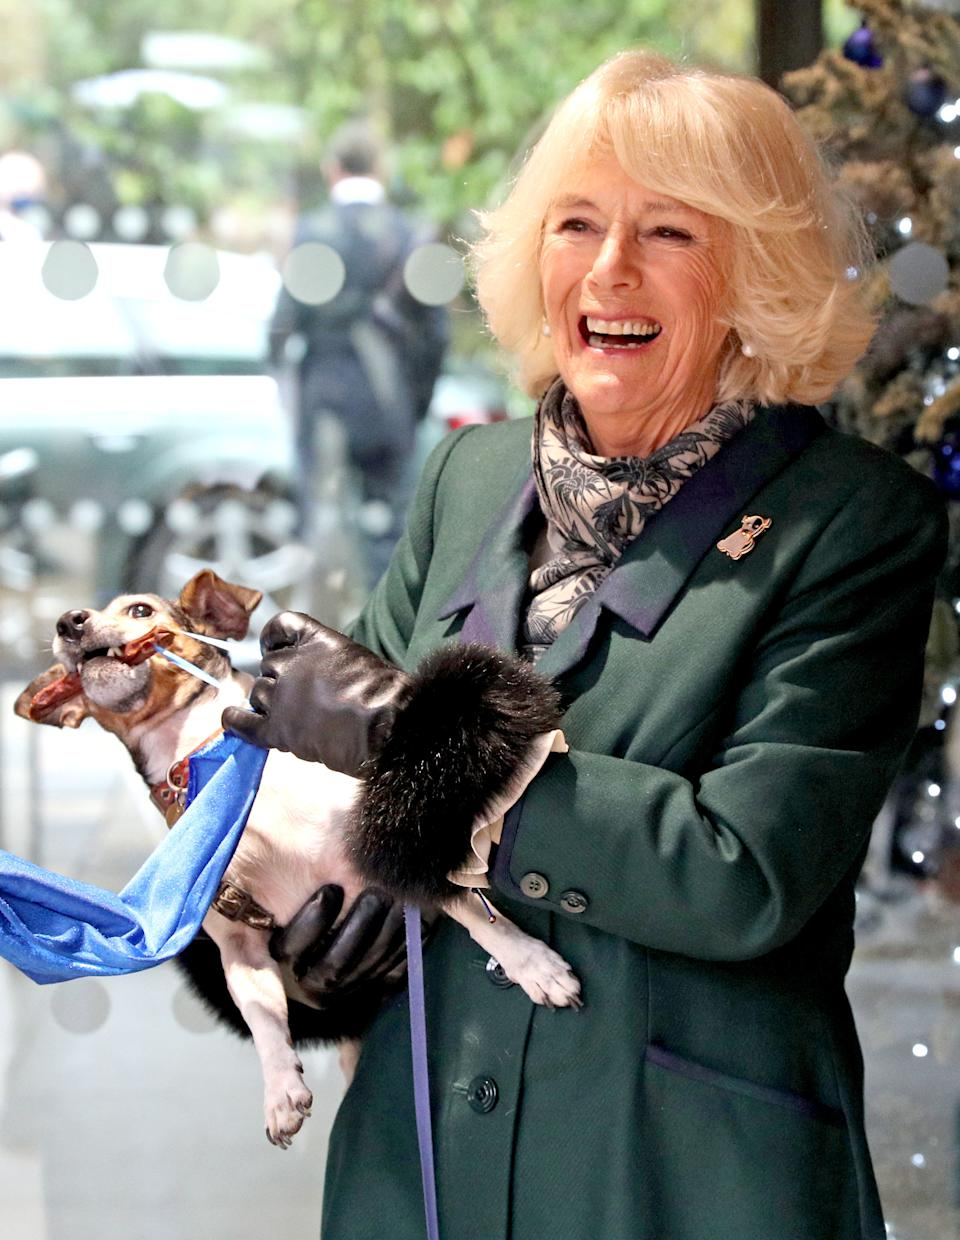 WINDSOR, ENGLAND - DECEMBER 09: Camilla, Duchess of Cornwall with Beth, her jack-russell terrier, unveiling a plaque as they visit the Battersea Dogs and Cats Home to open the new kennels and thank the centre's staff and supporters on December 9, 2020 in Windsor, United Kingdom. (Photo by Steve Parsons - WPA Pool/Getty Images)